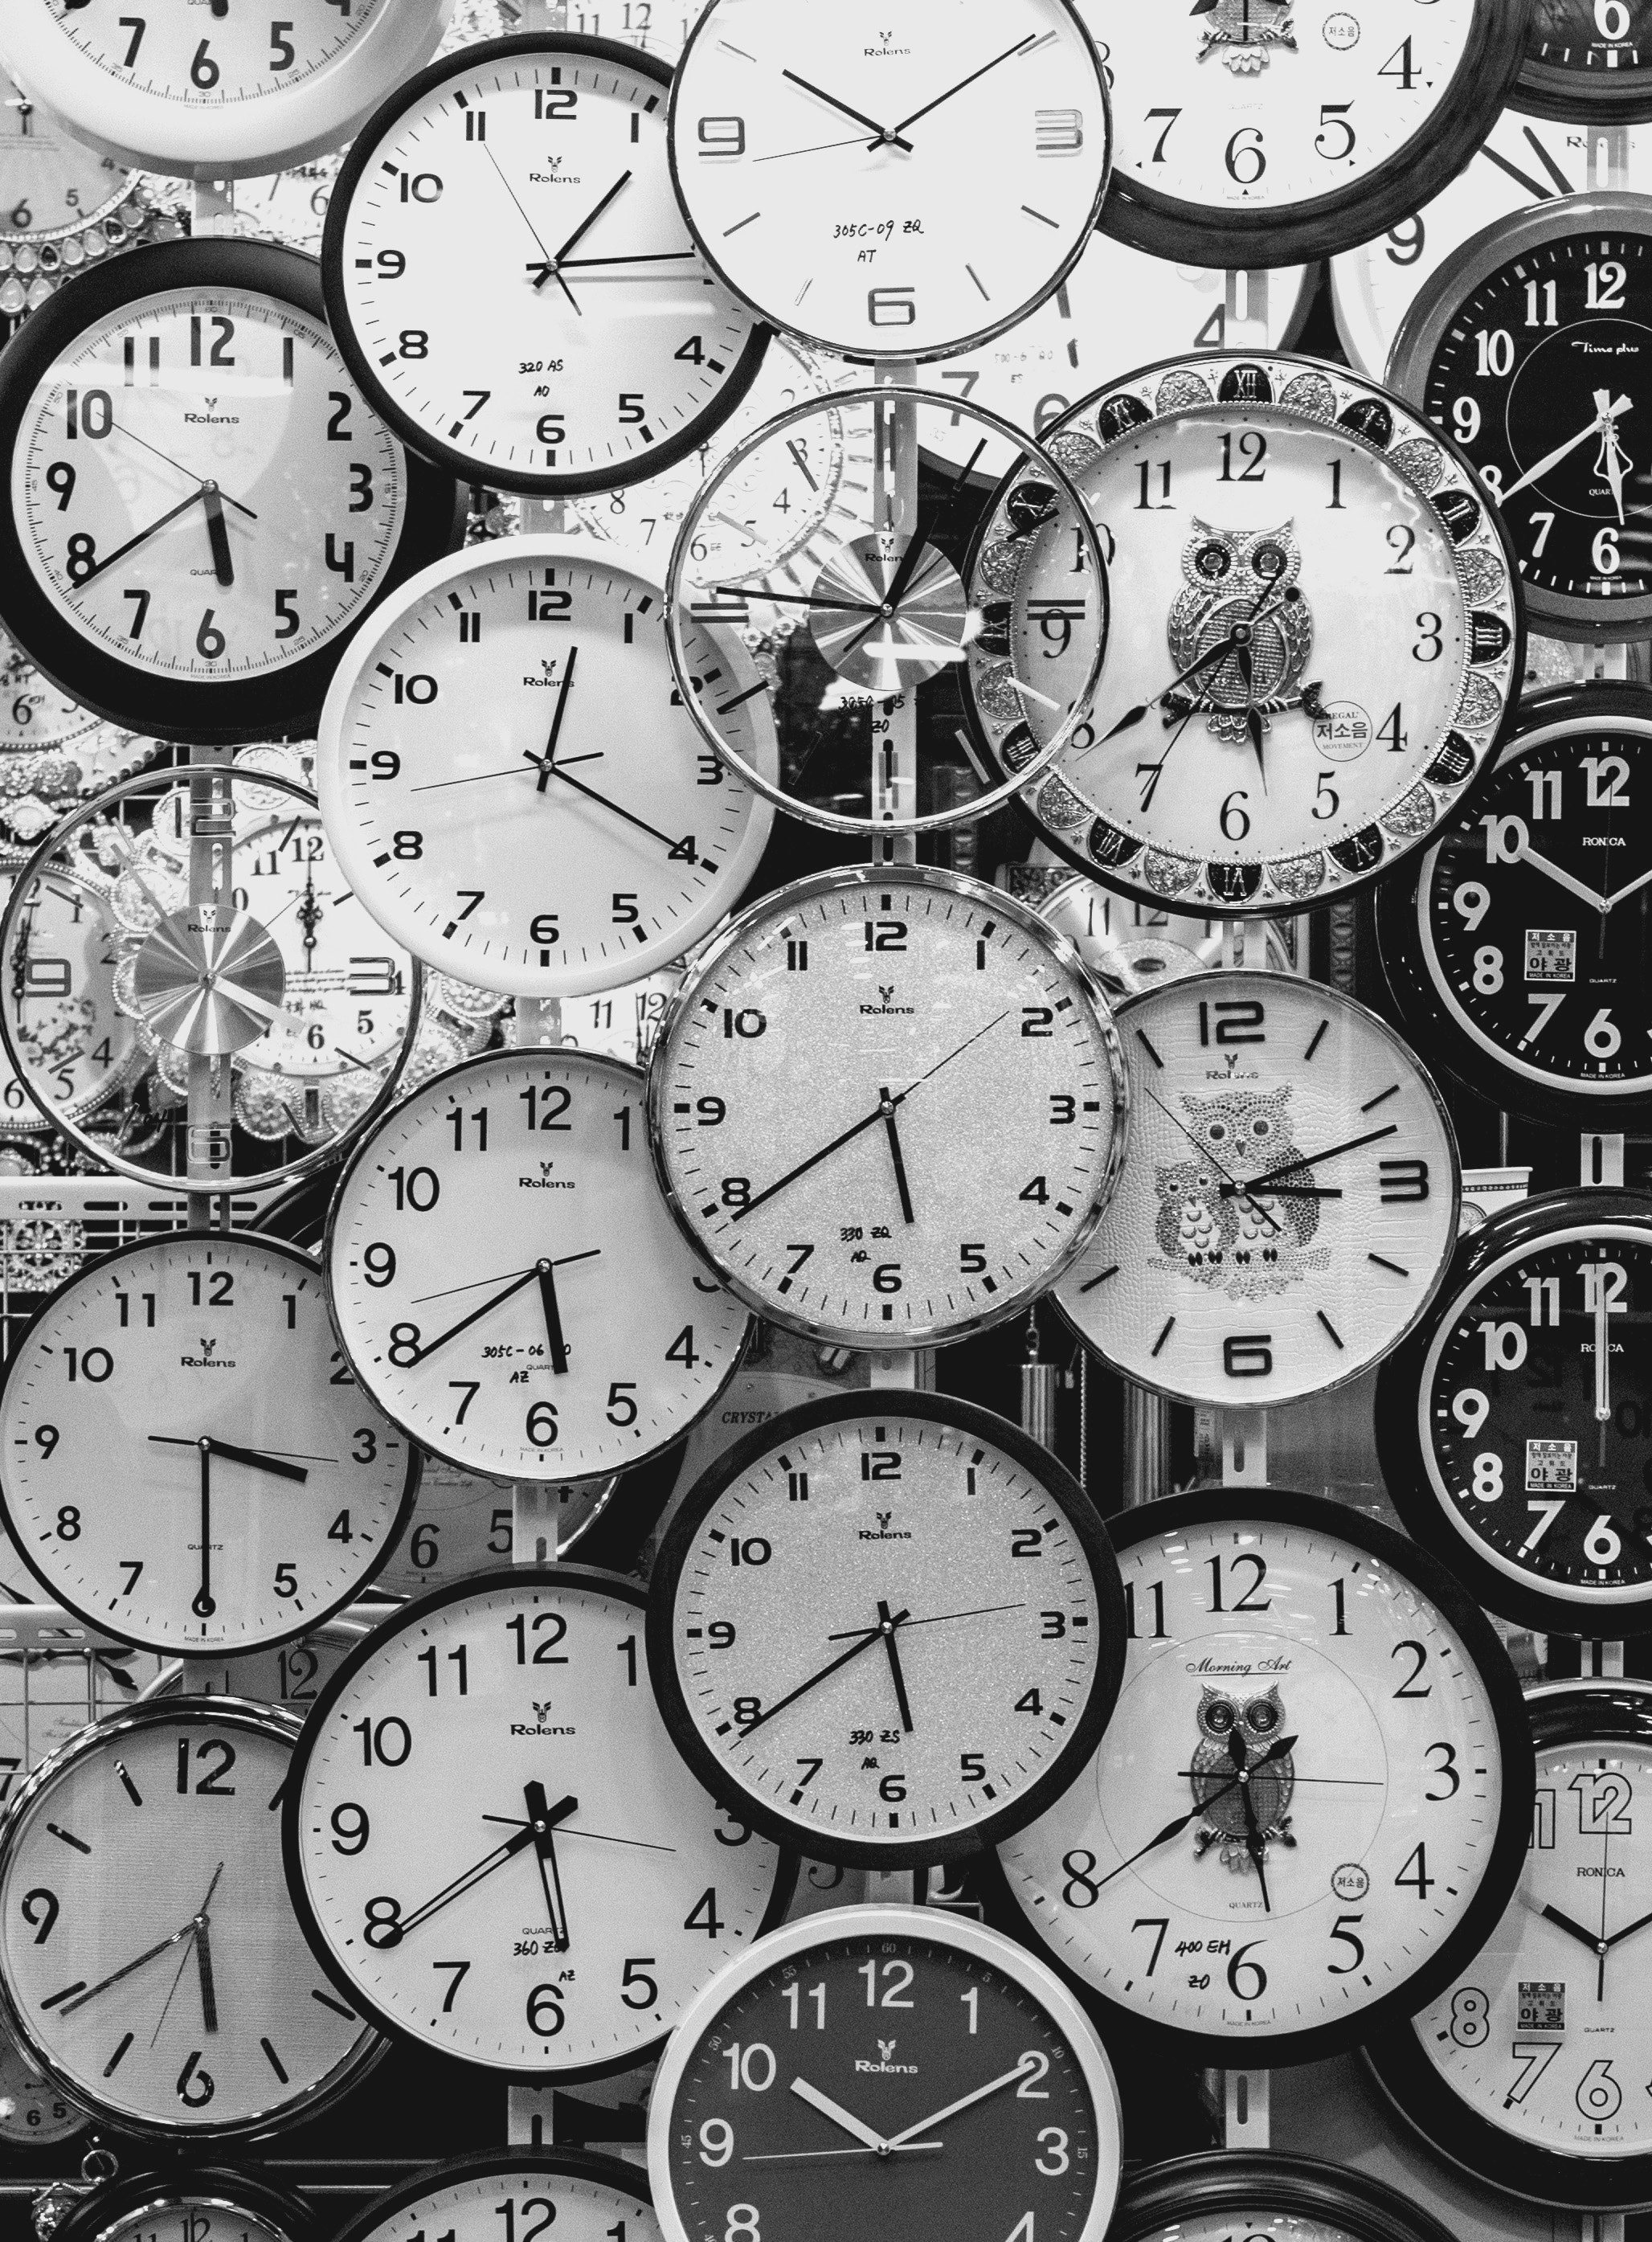 black-and-white-black-and-white-clocks-707676.jpg